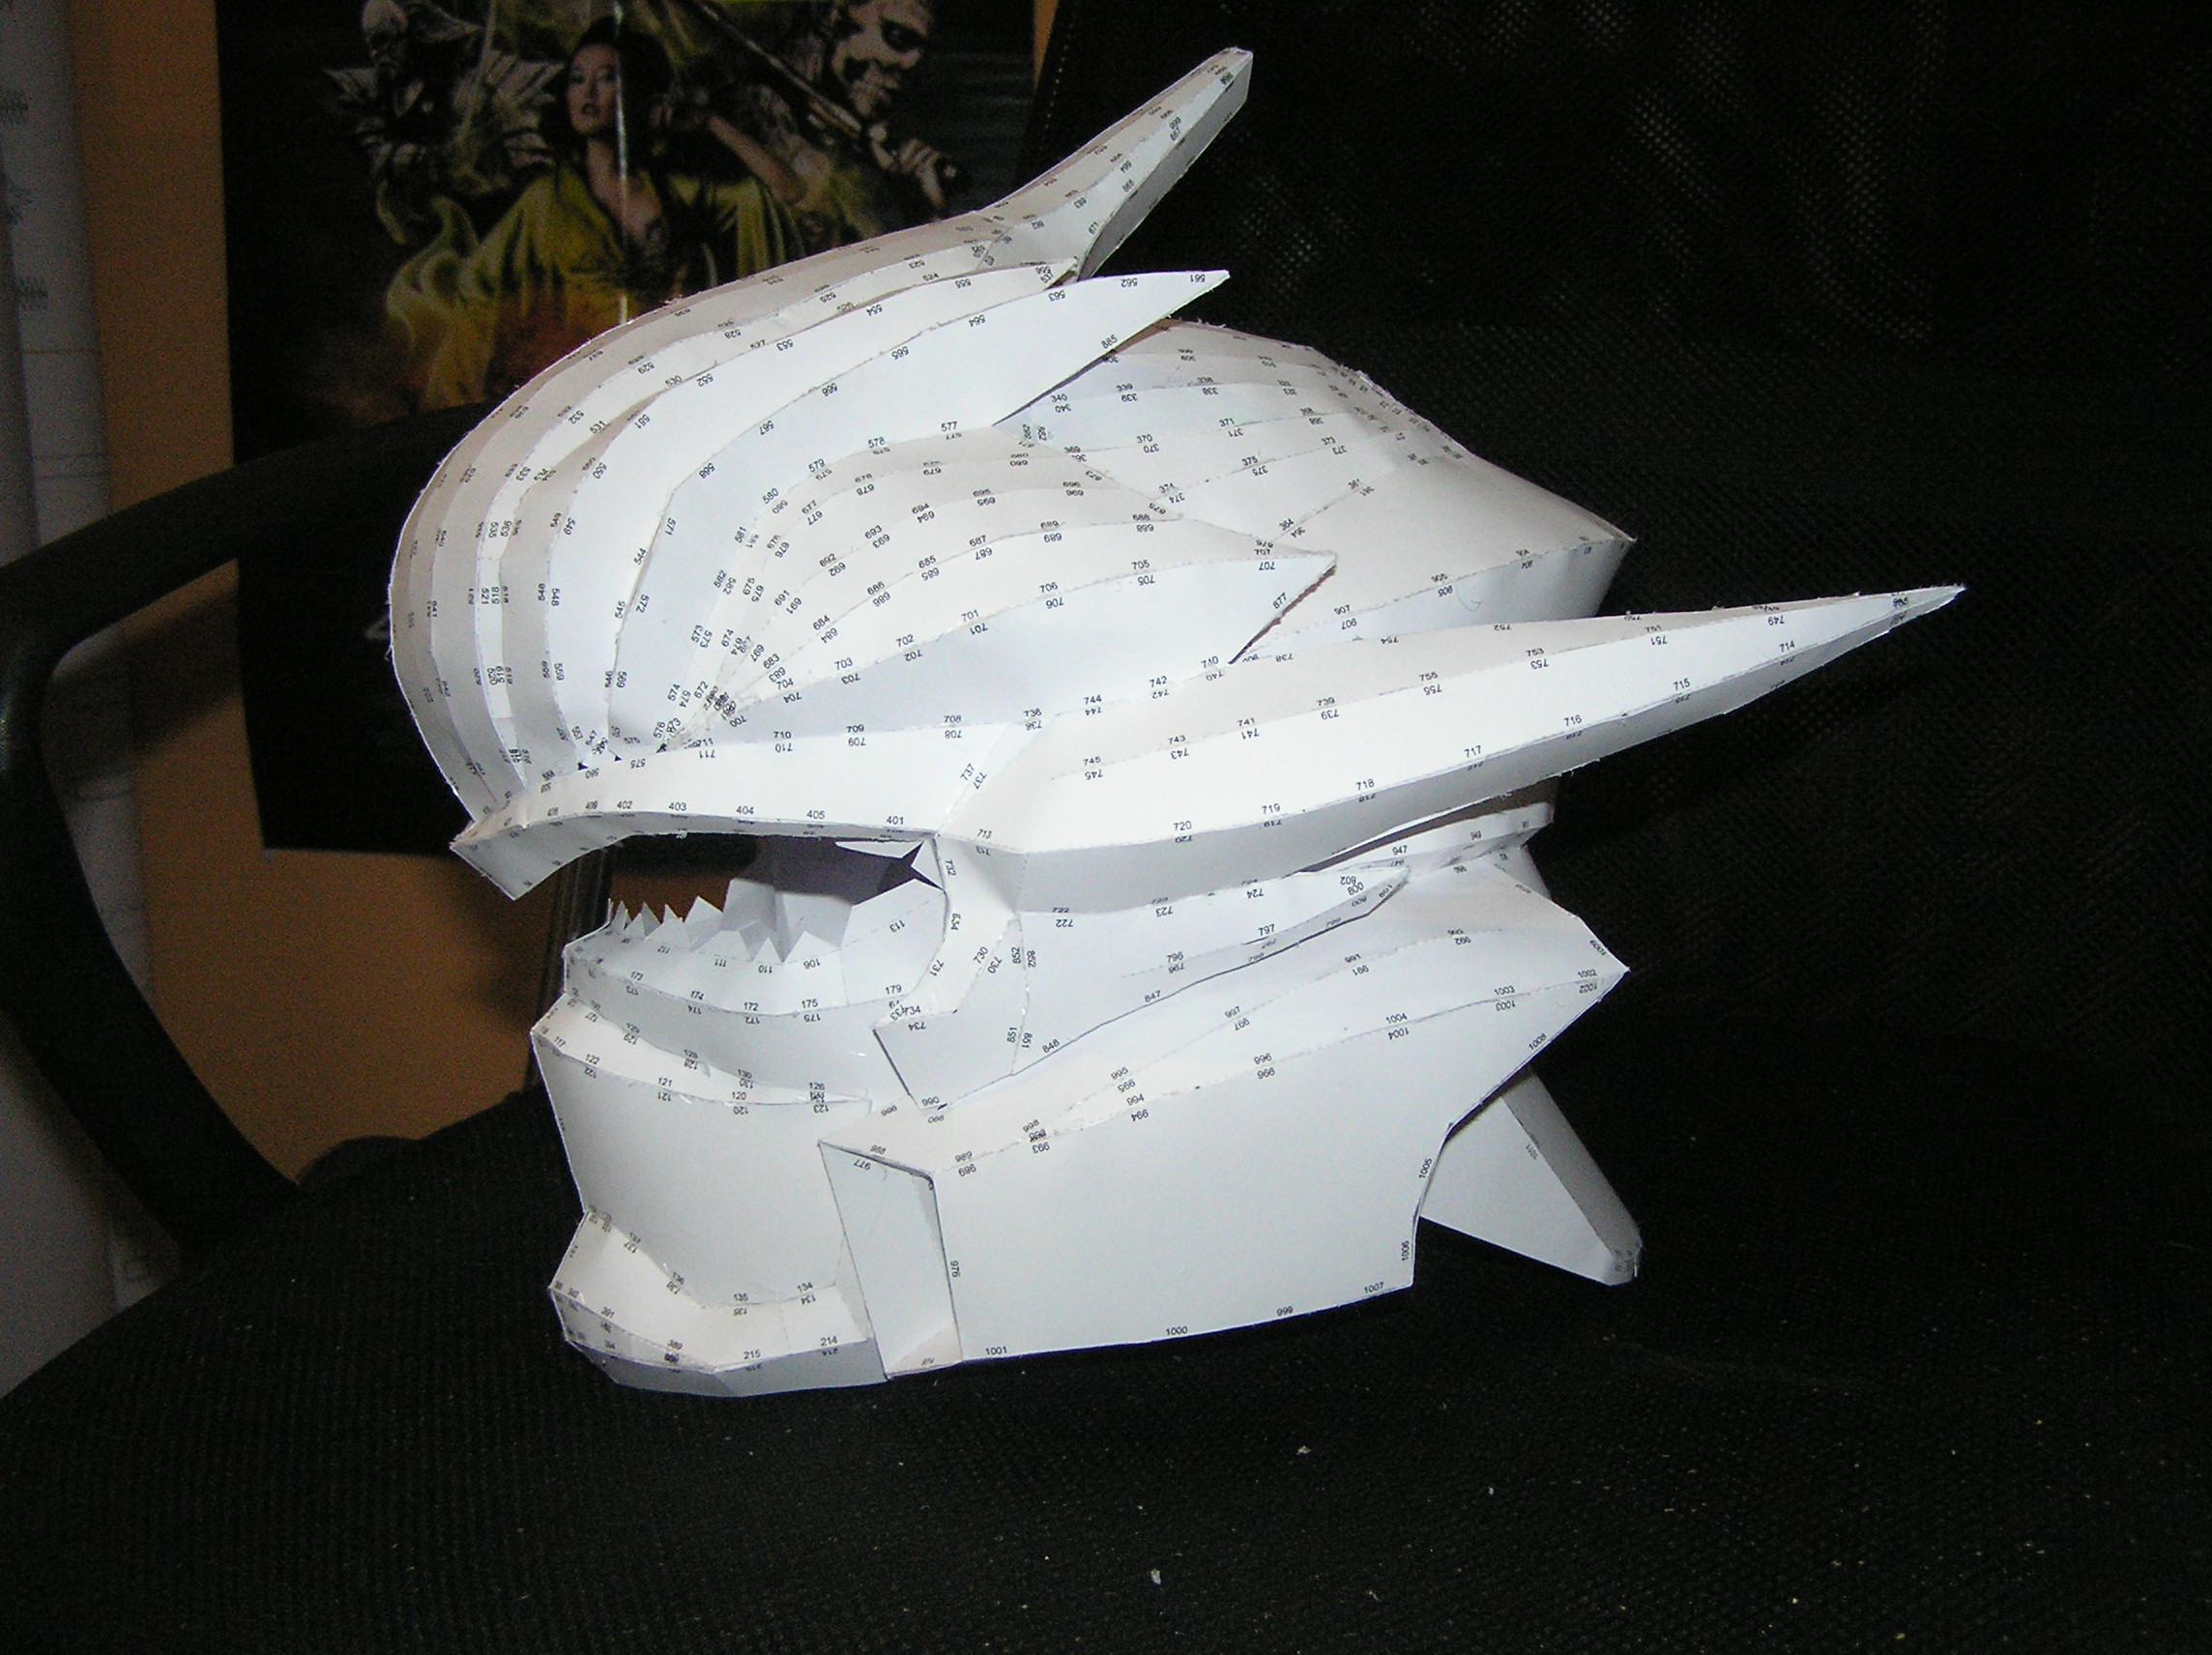 PEPAKURA - Halo Hayabusa 1/2 by distressfasirt on DeviantArt